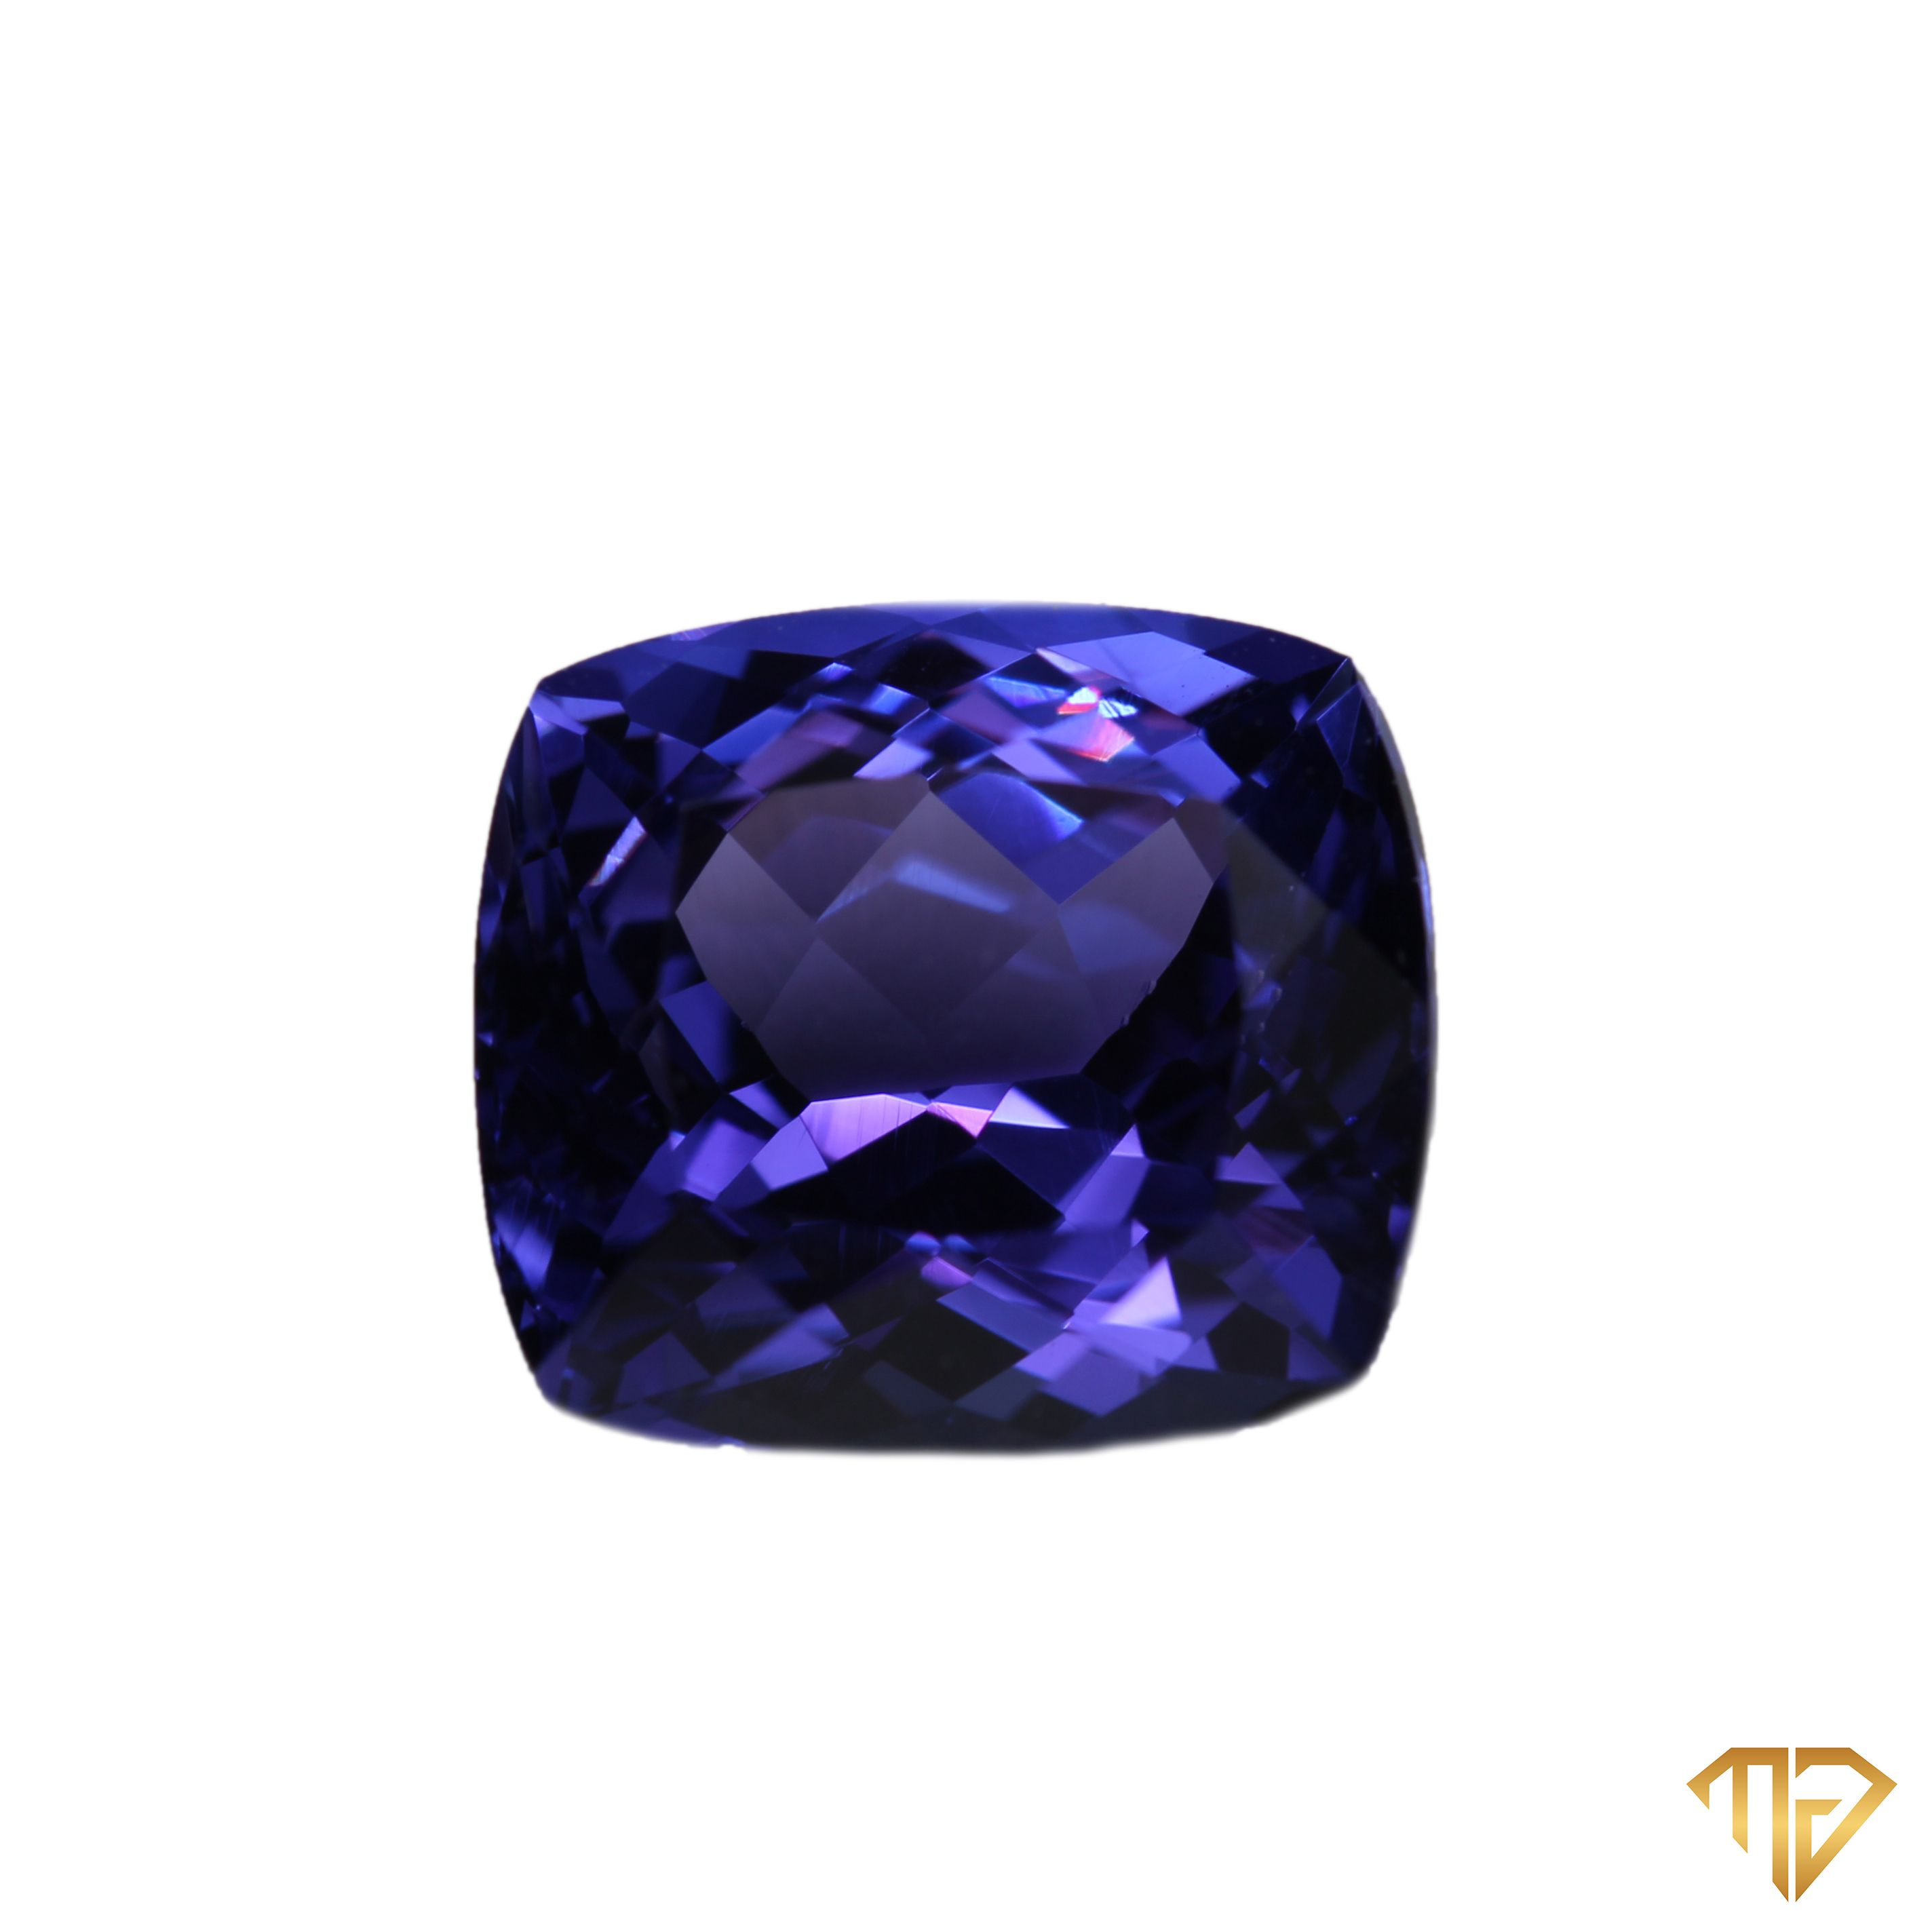 gem gemstones news ring oval stone the diamond cut surrounded columns gems miscellaneana and tanzanite international scarce mixed central cluster